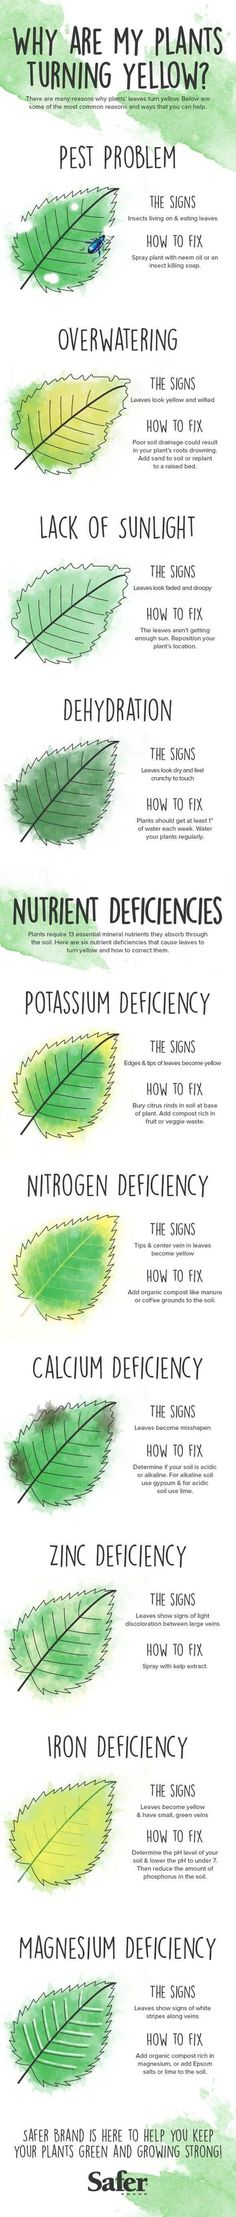 Vegetable Gardening- Why are leaves turning yellow?